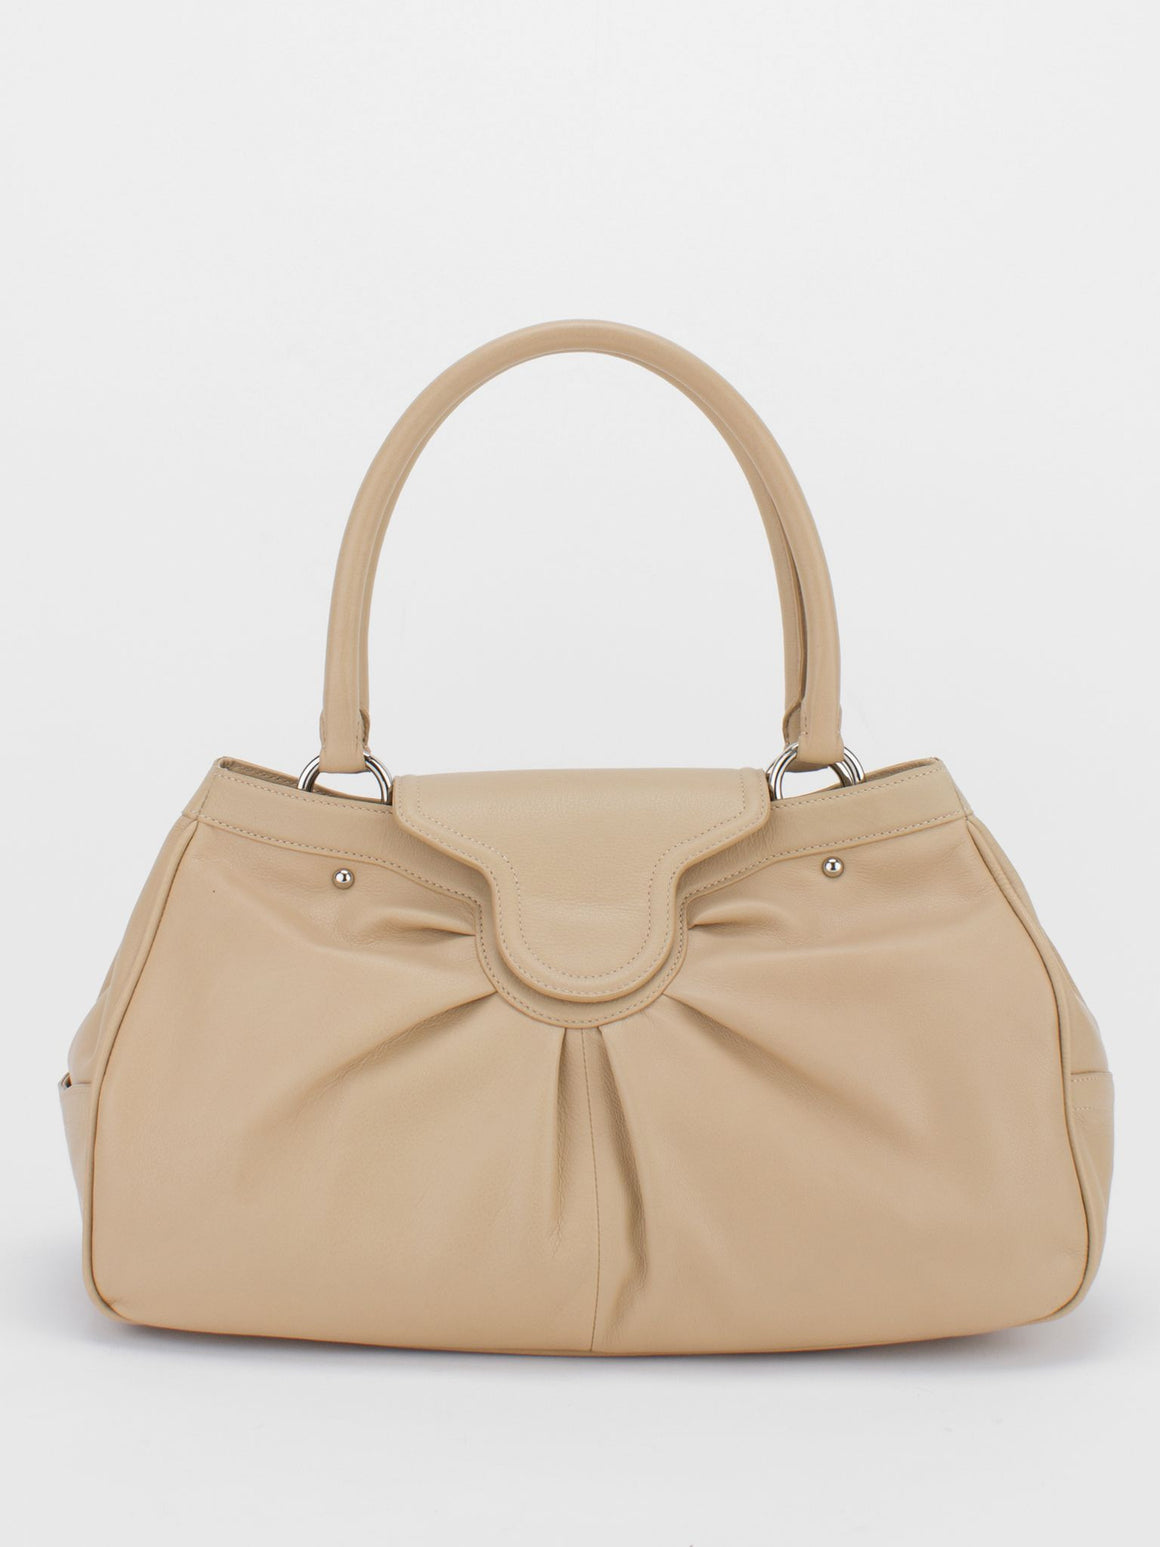 YVETTE Pleated Leather Tote - Beige